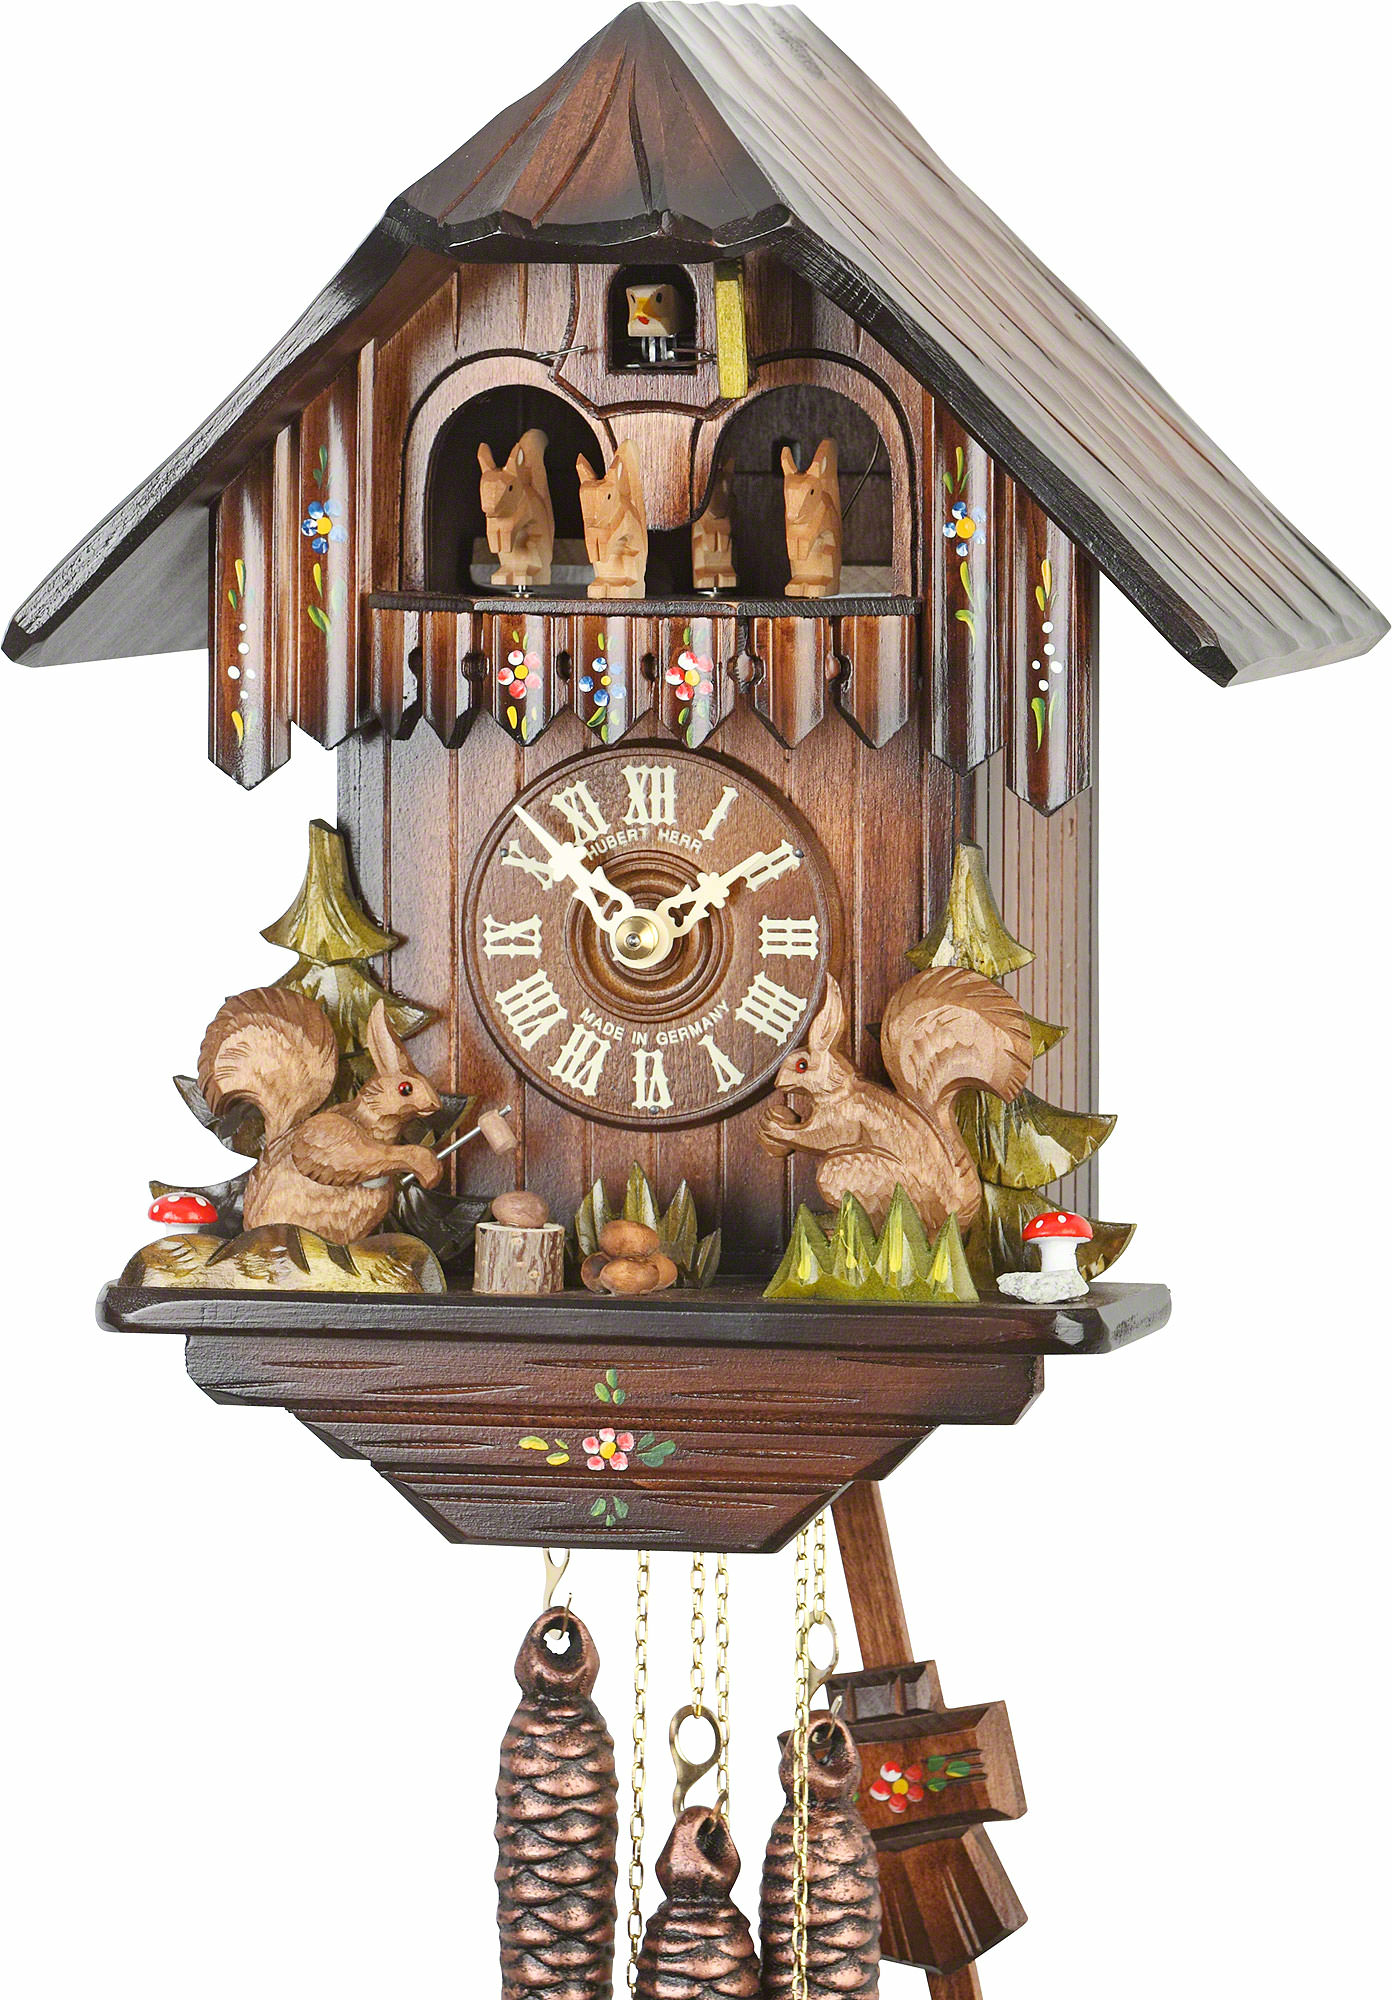 Cuckoo Clock 1-day-movement Chalet-Style 30cm by Hubert ...